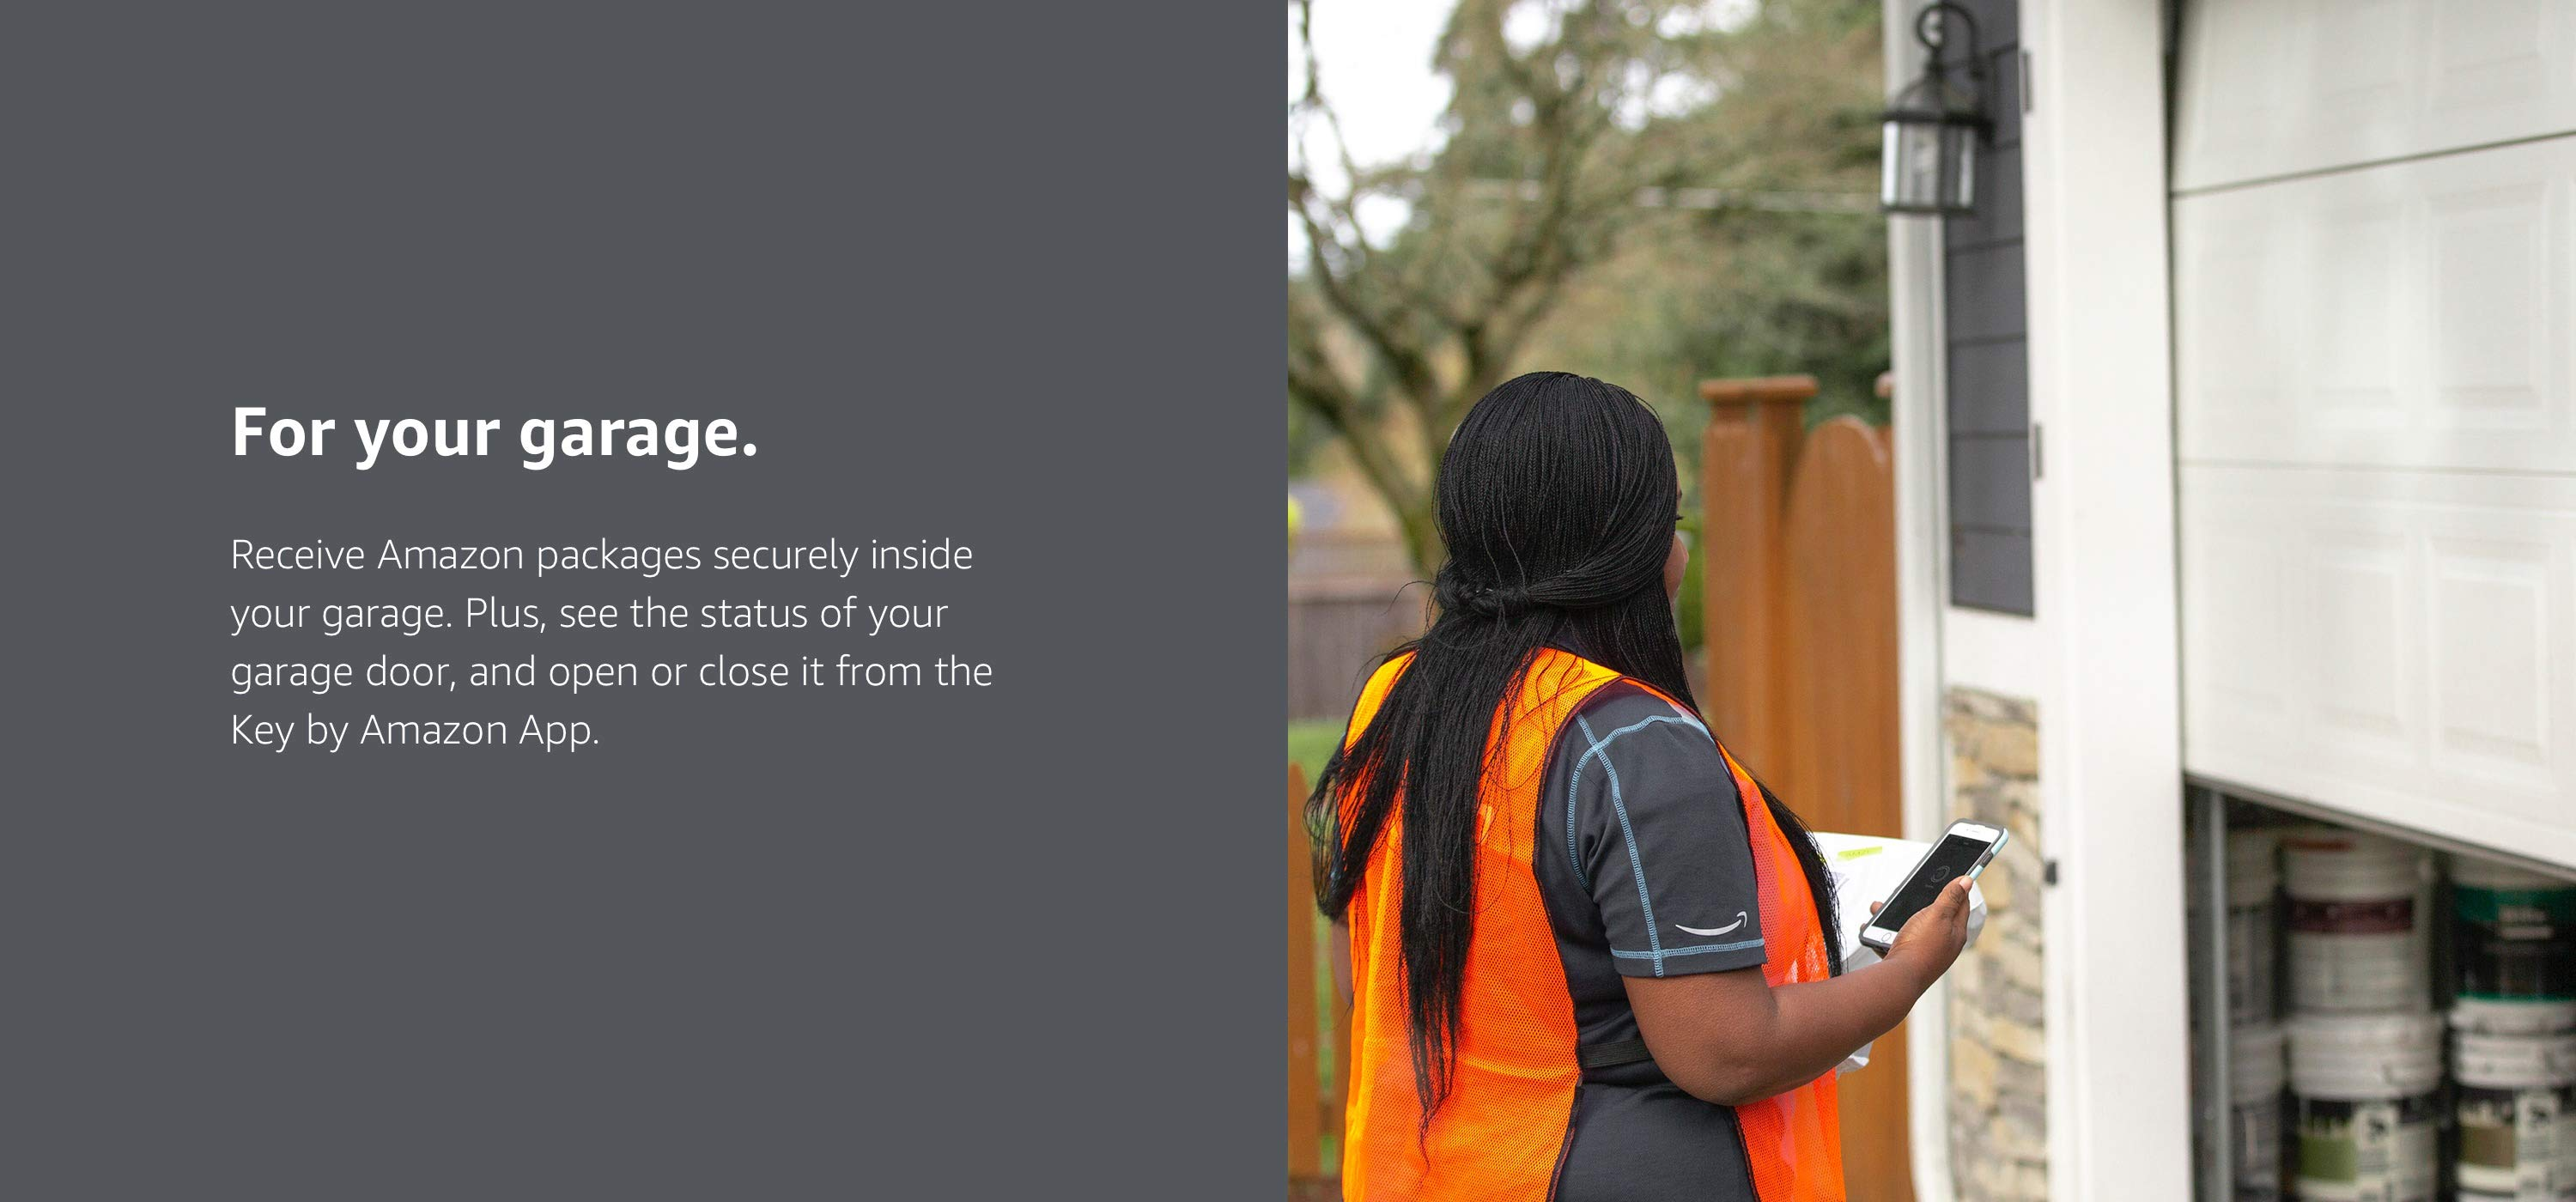 Receive Amazon packages securely inside your garage, see the status of your garage door, and open or close it remotely.